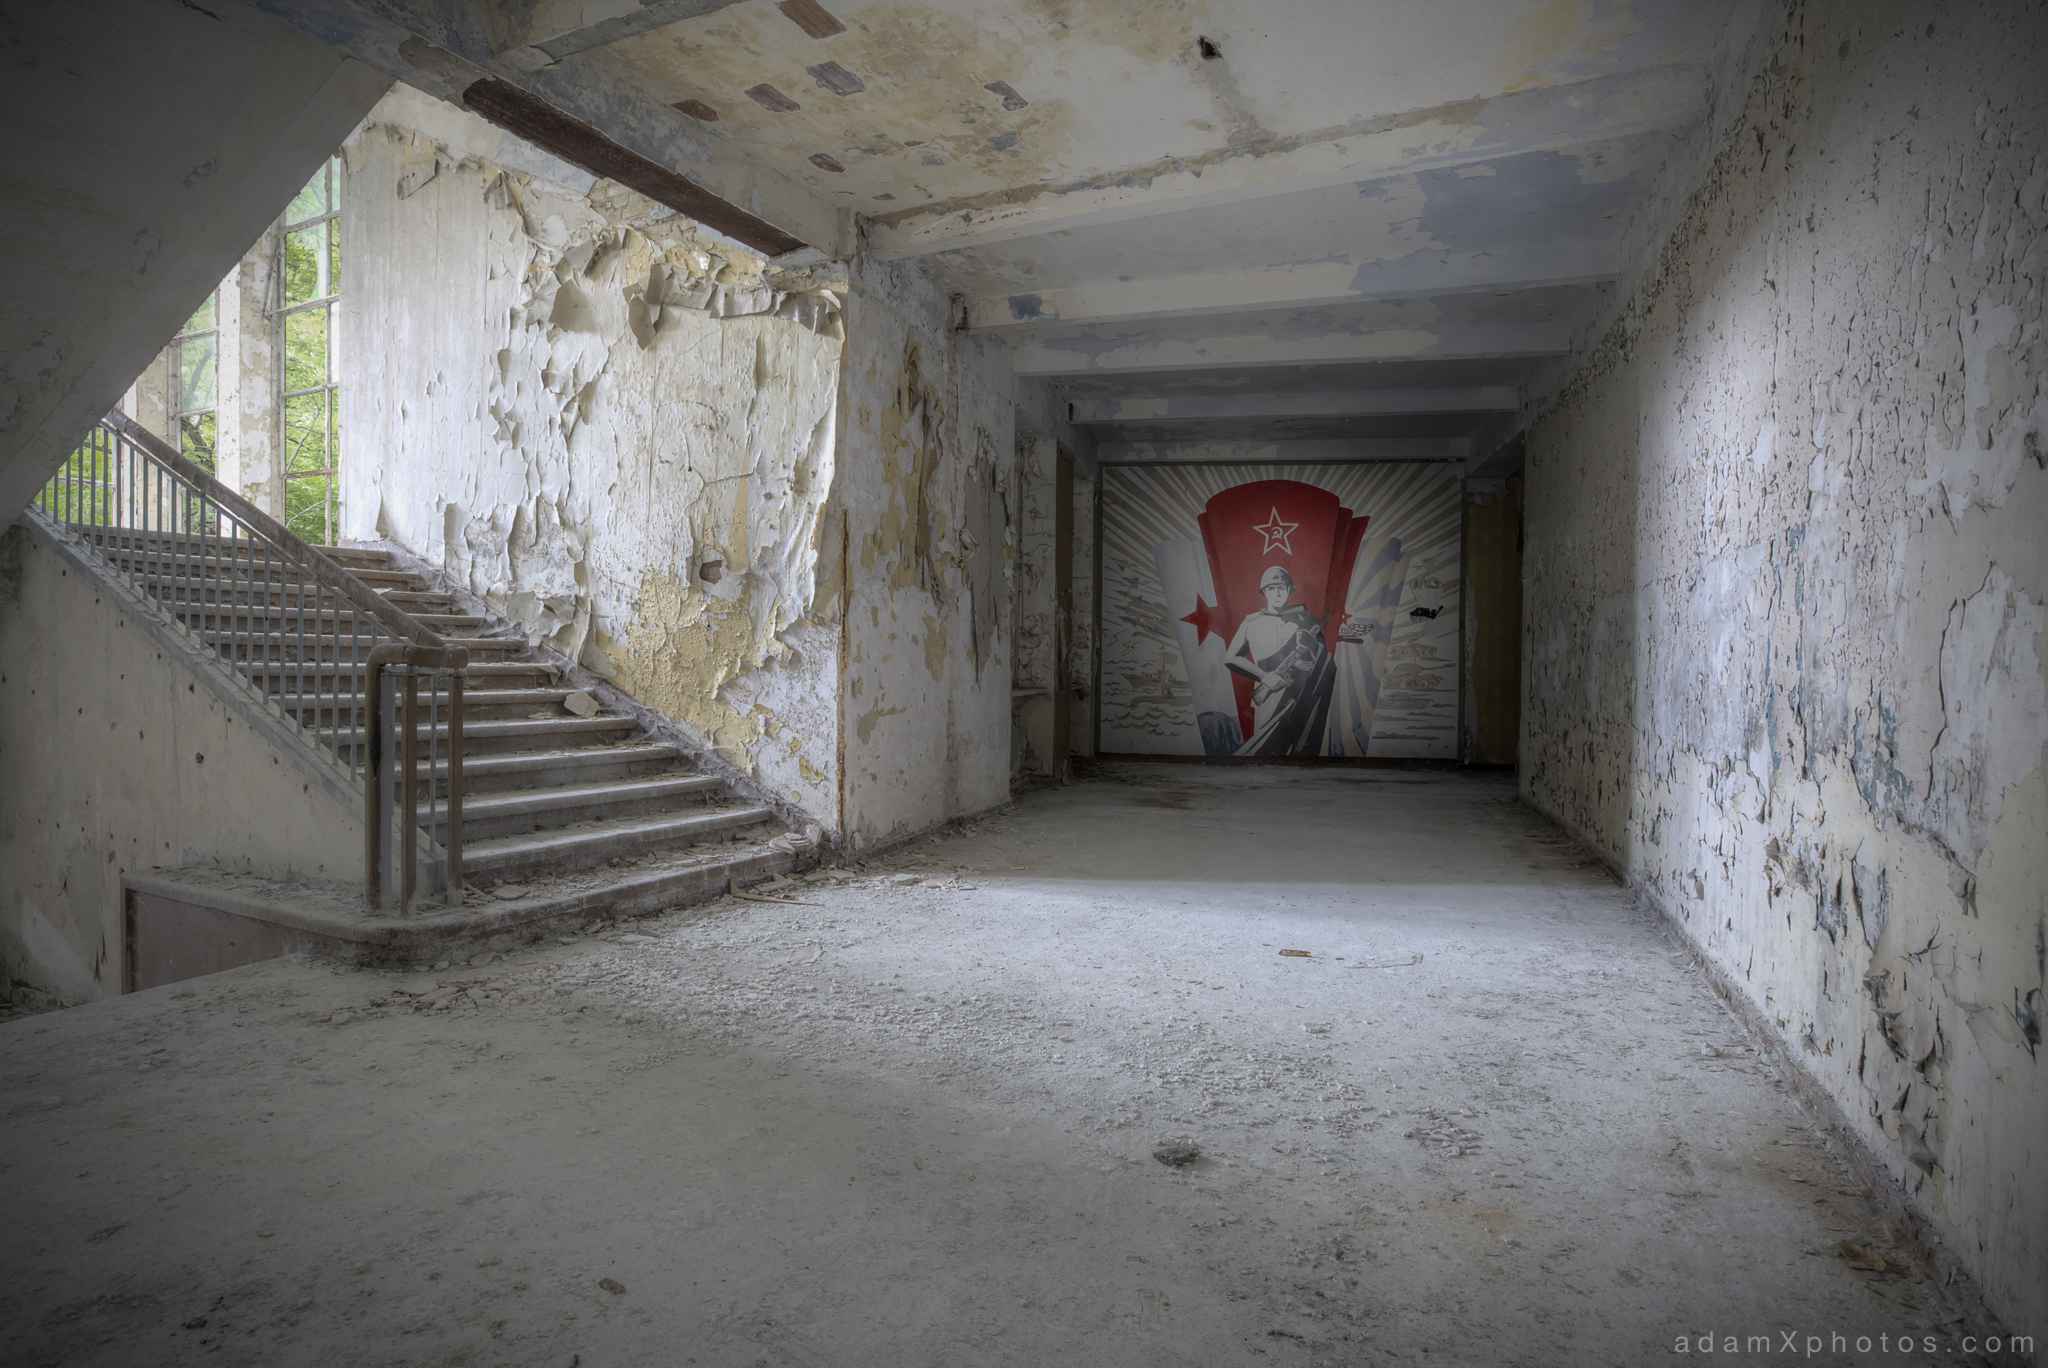 Adam X Urbex Altes Lager Juterbog Germany Urban Exploration Air base flight school CCCP Soviet Russian military Decay Lost Abandoned Derelict Hidden mural soldier wall painting picture photography corridor